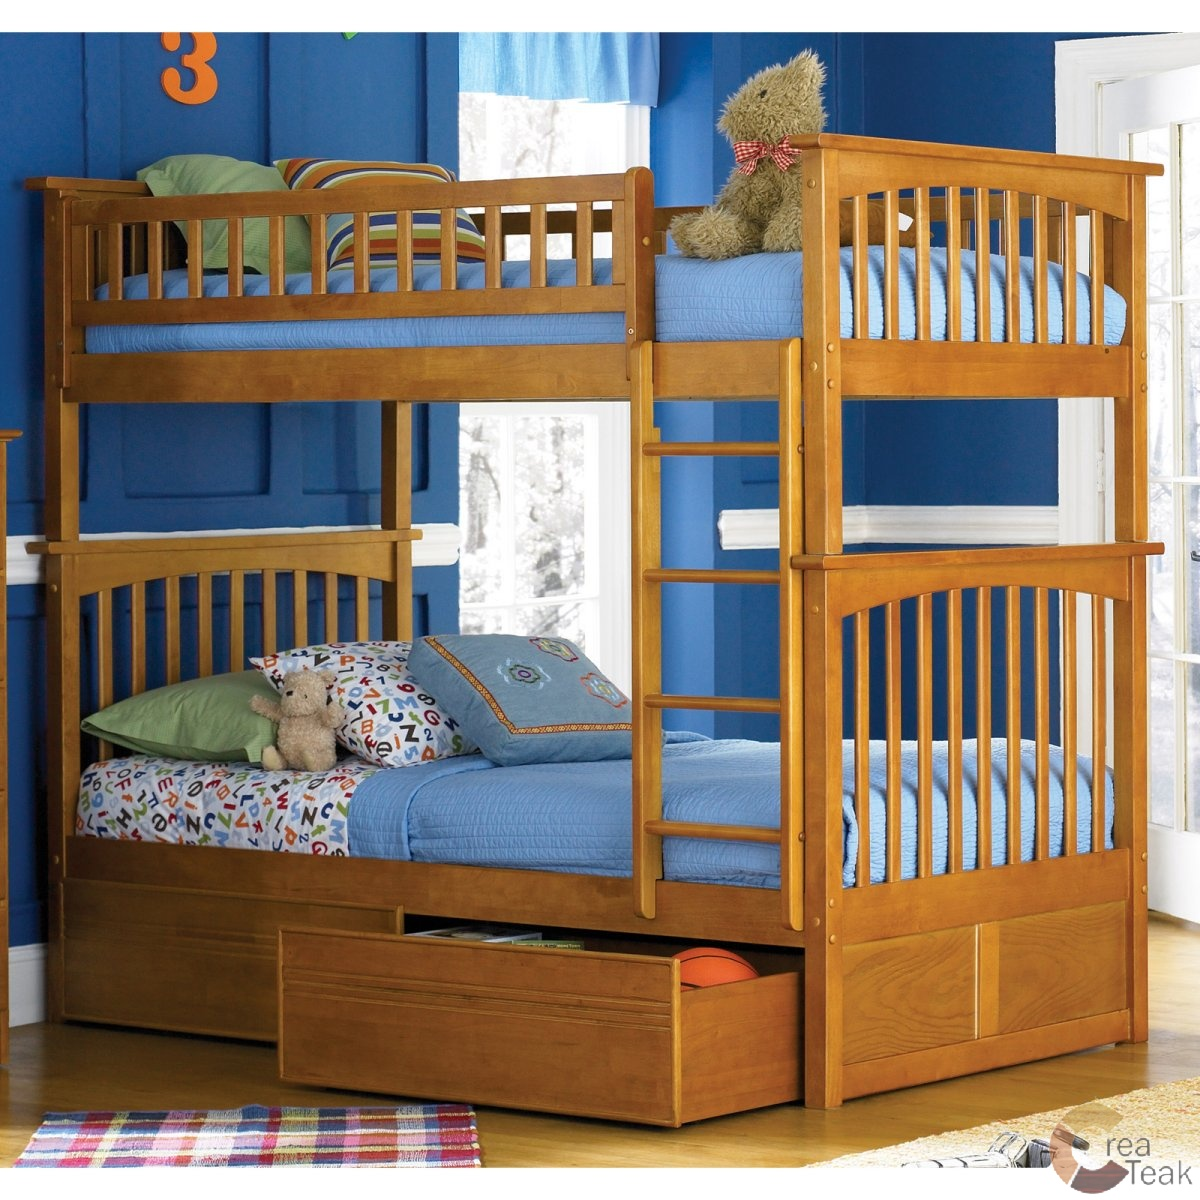 search results for tempat tidur bayi cowok mewah pictures